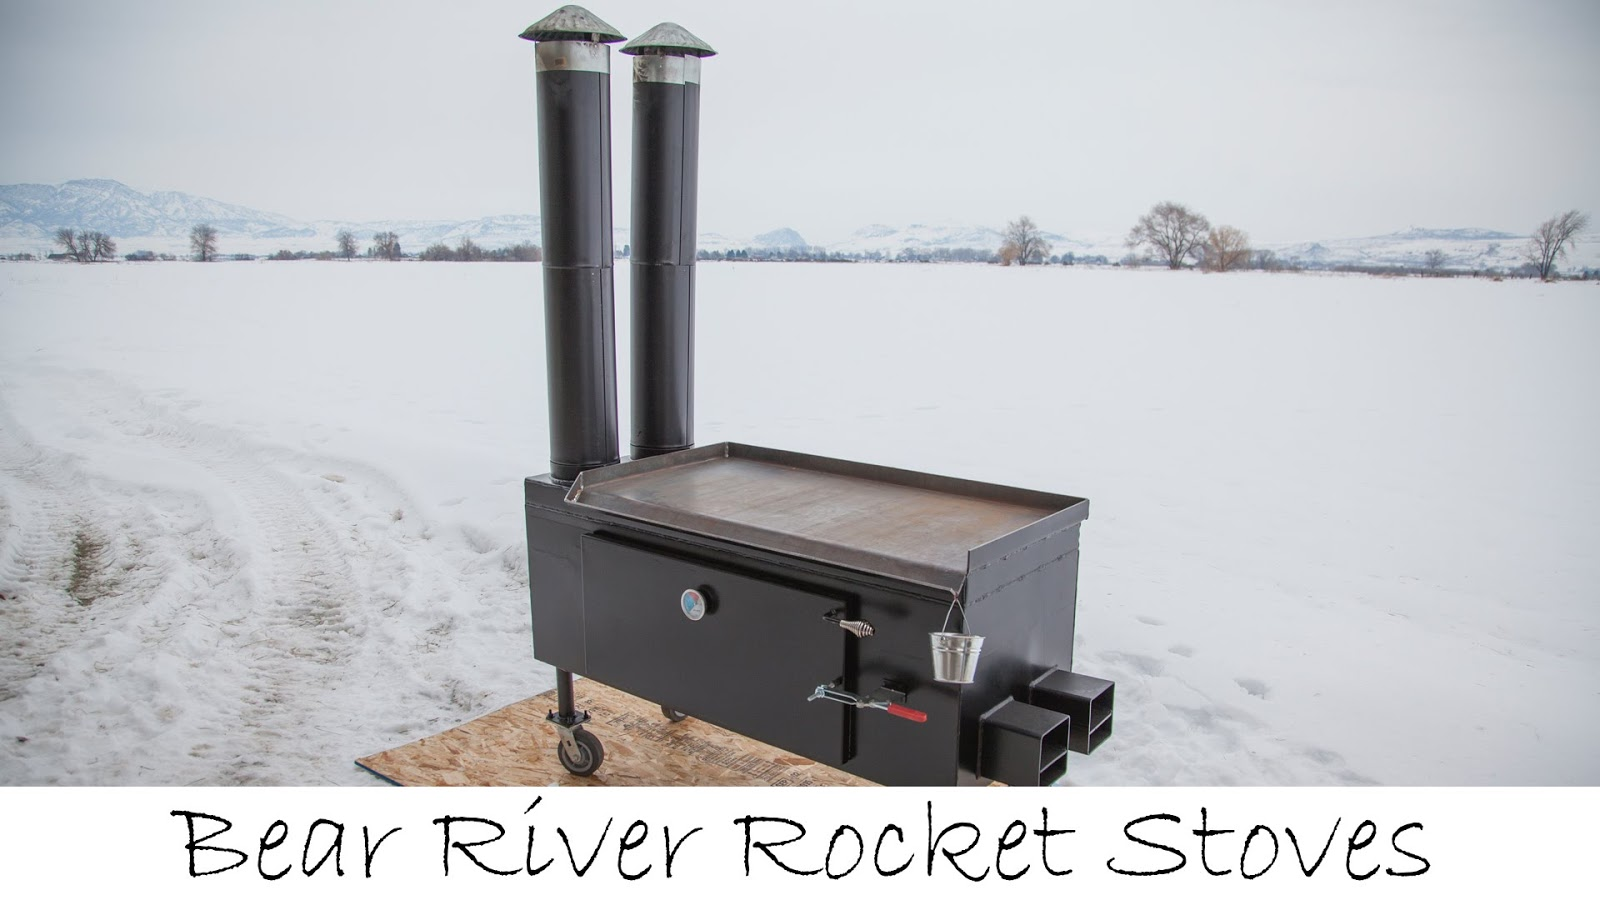 EcoZoom Versa. The champion of rocket stoves! ~ The Prepared Guy